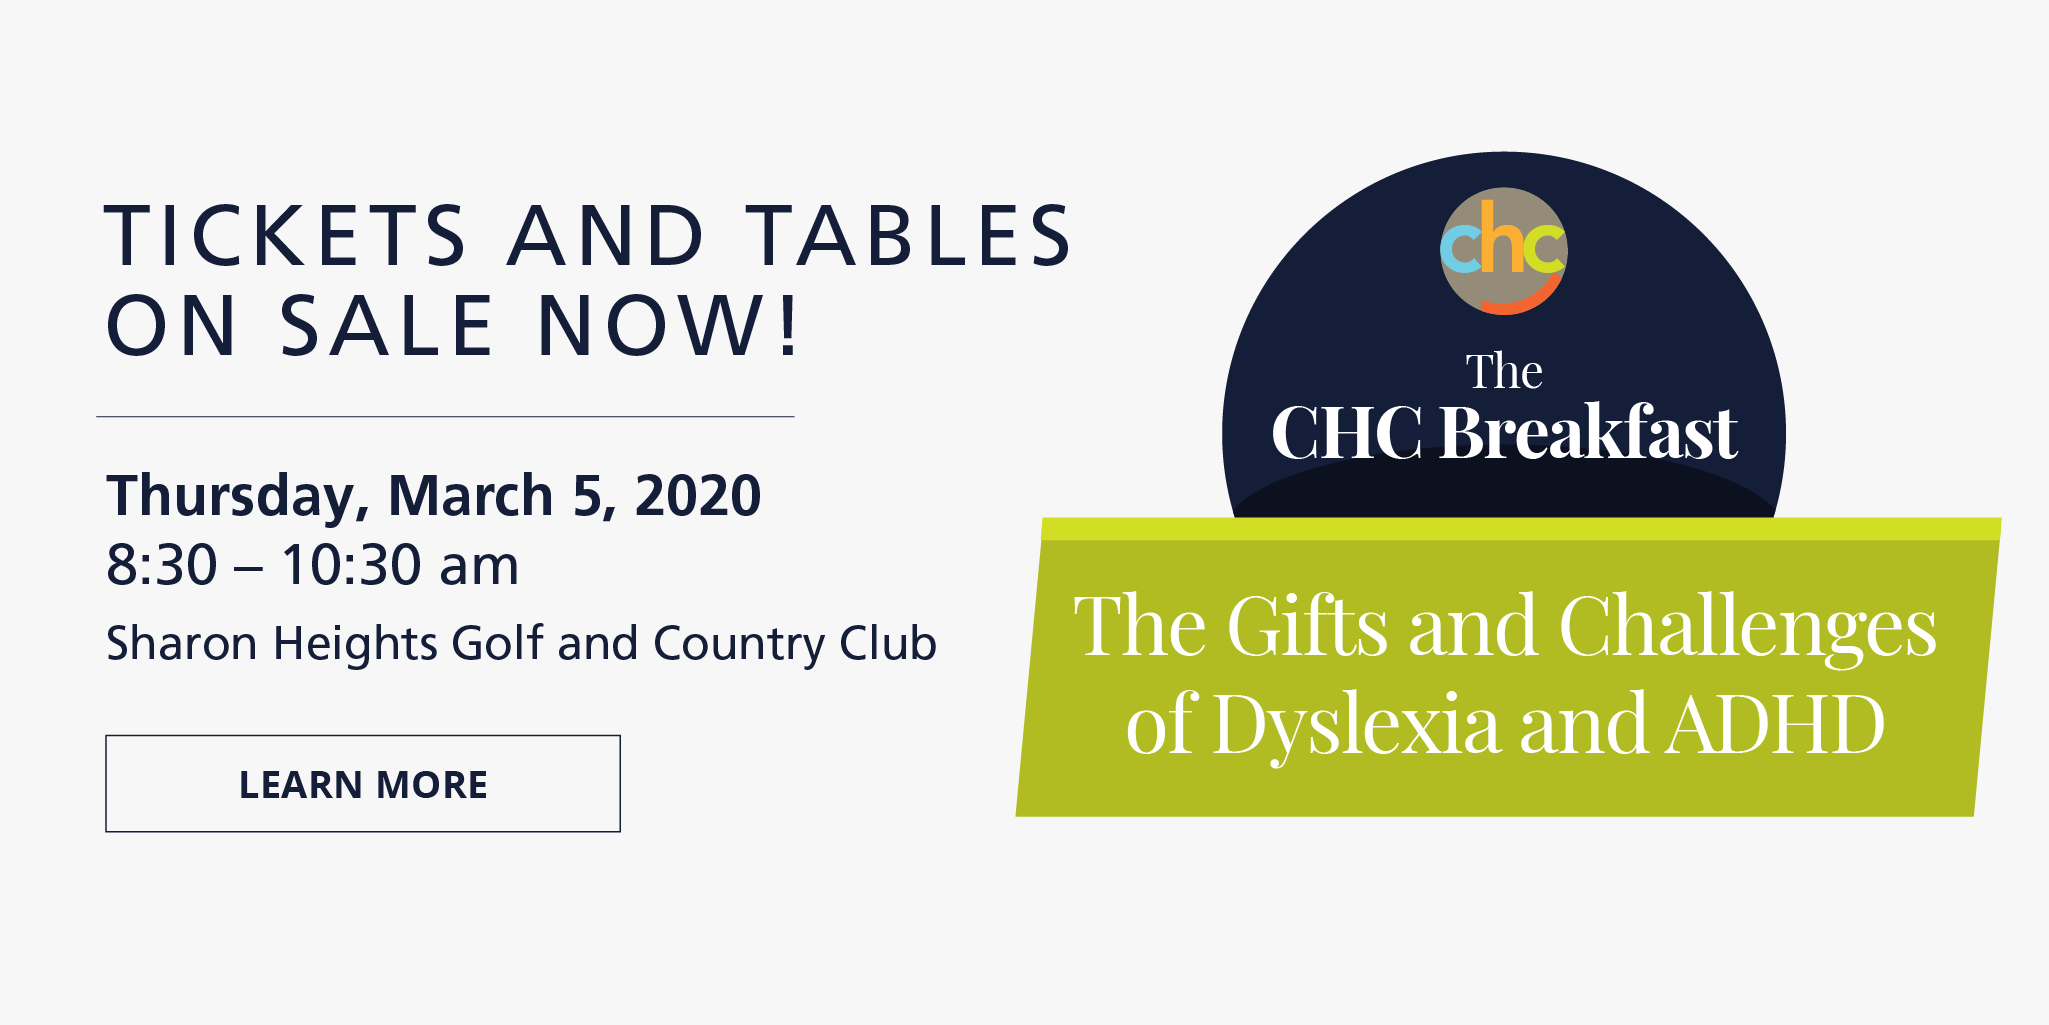 The CHC Breakfast Buy Tickets and Tables. Thursday, March 5, 2020, 8:30 – 10:30 am. Sharon Heights Golf and Country Club, The Gifts and Challenges of Dyslexia and ADHD